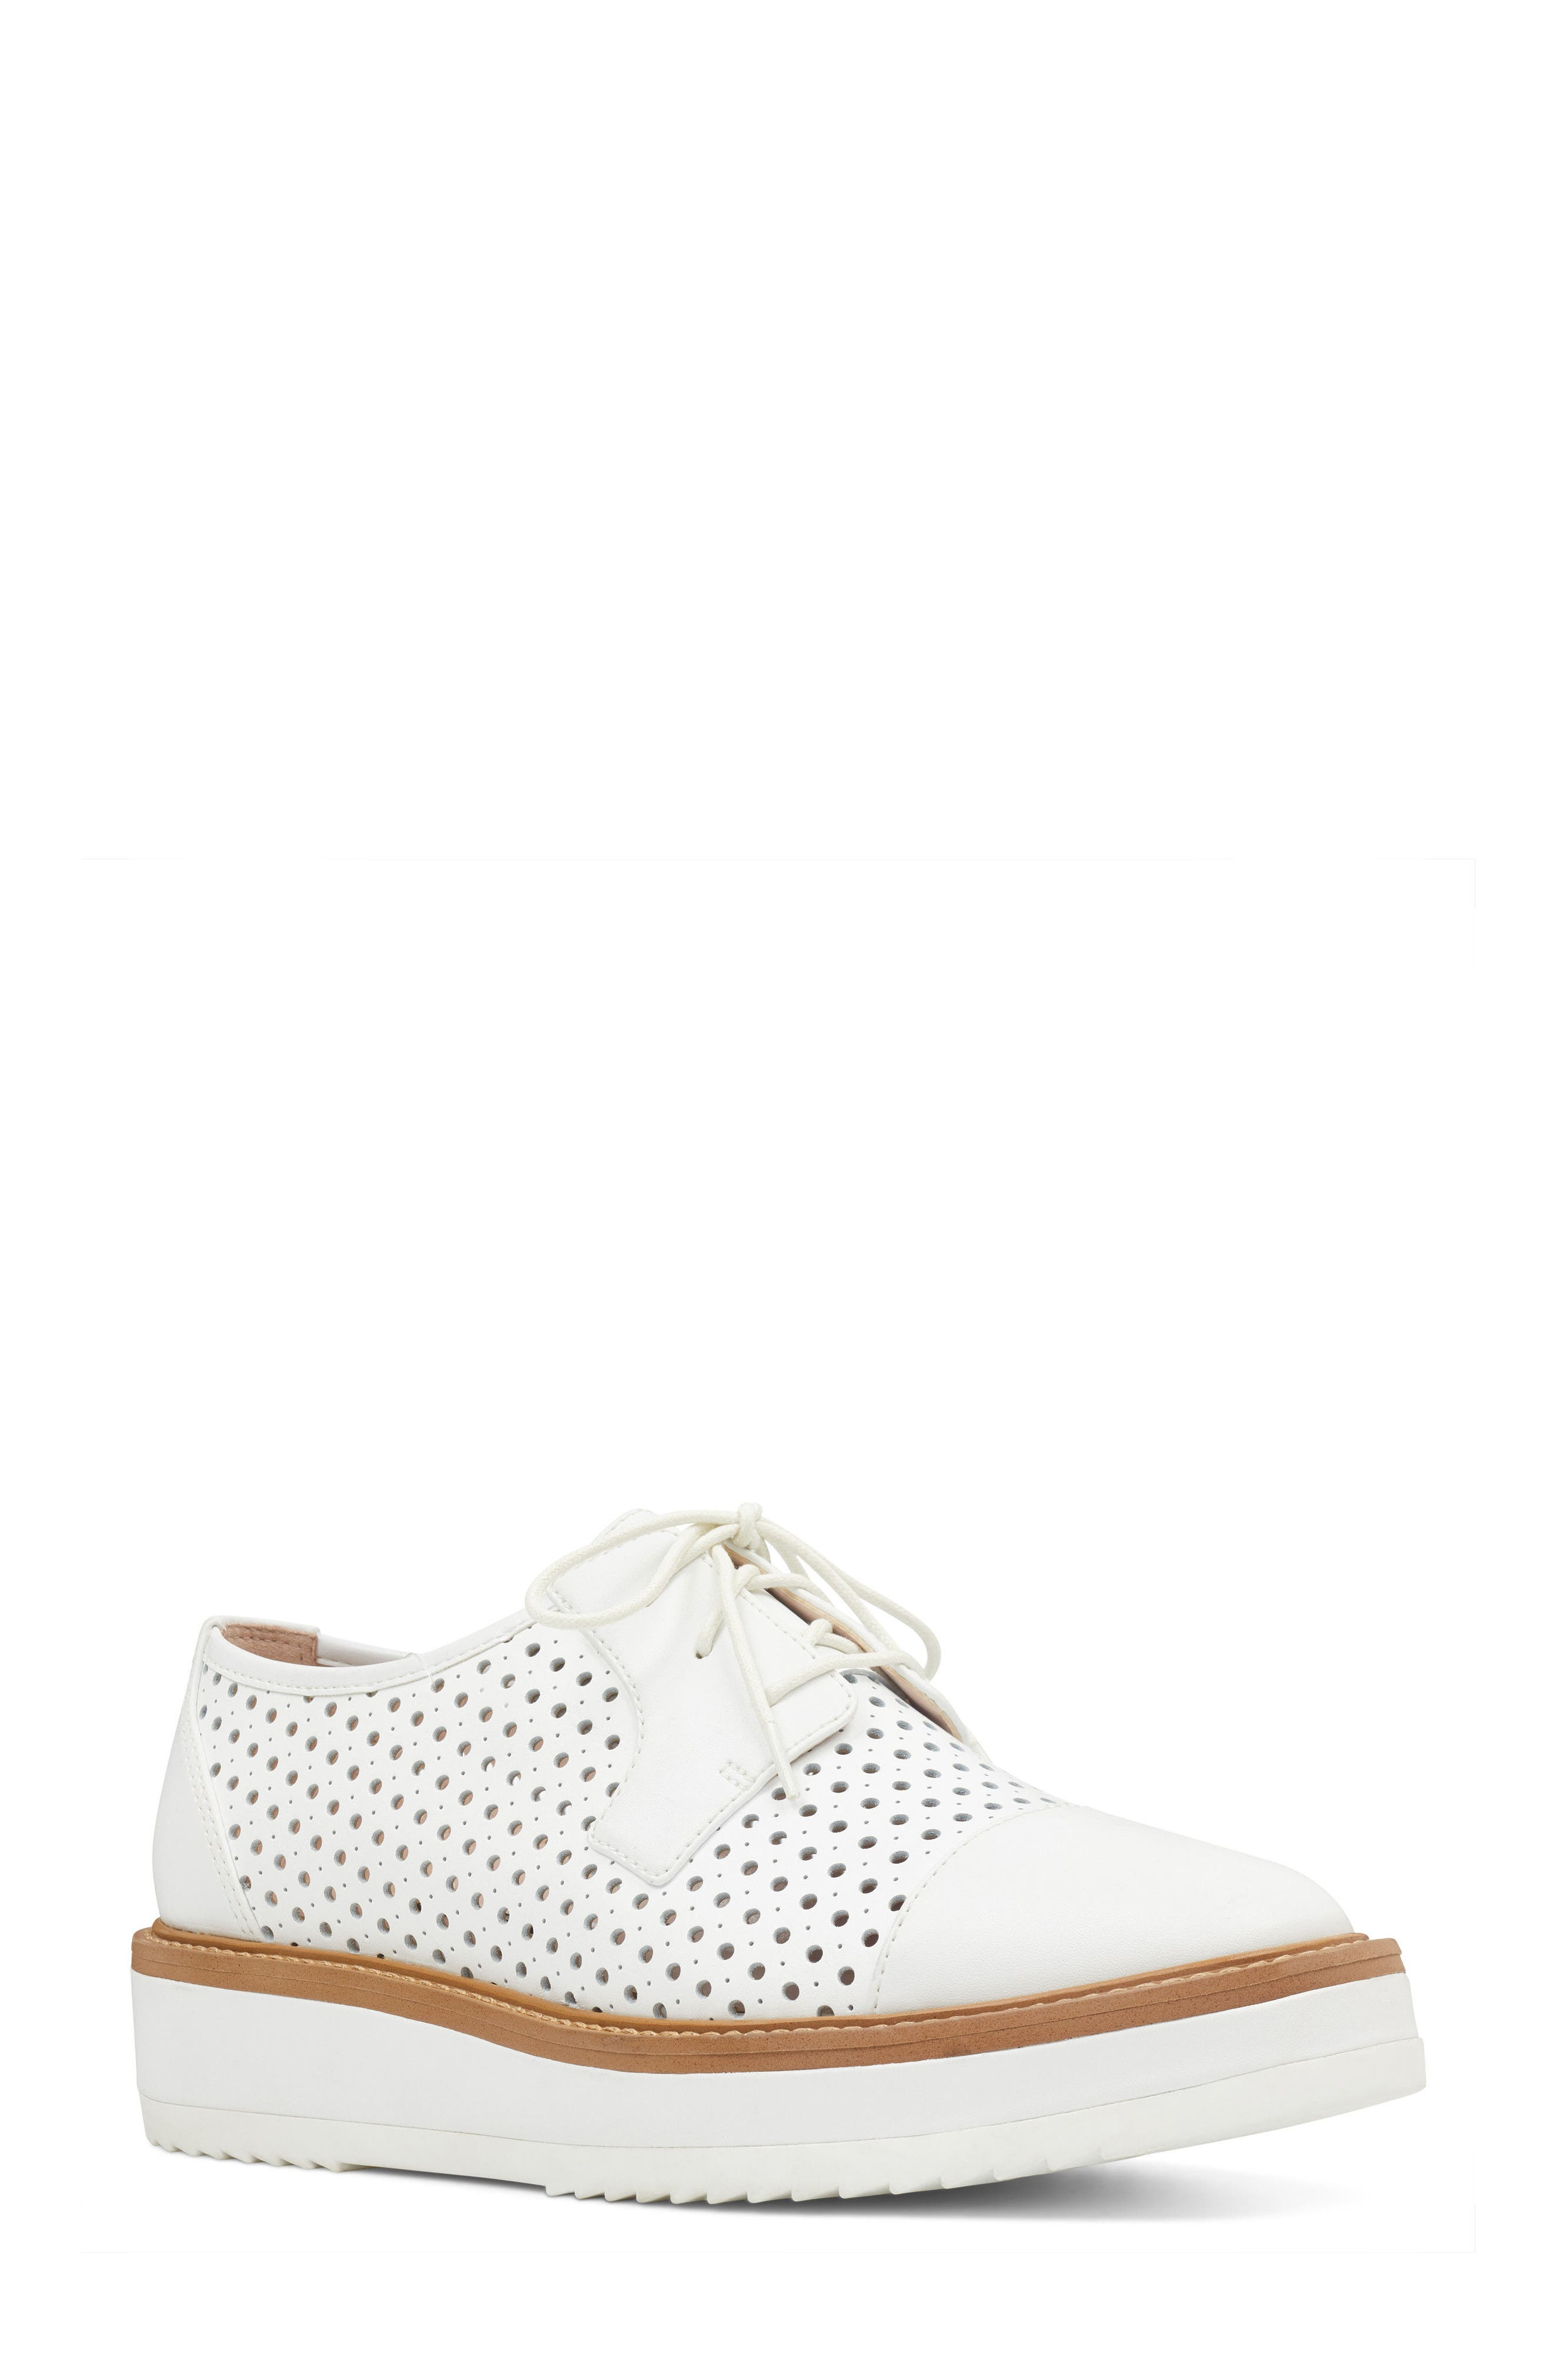 Nine West Verwin Perforated Cap Toe Derby (Women)